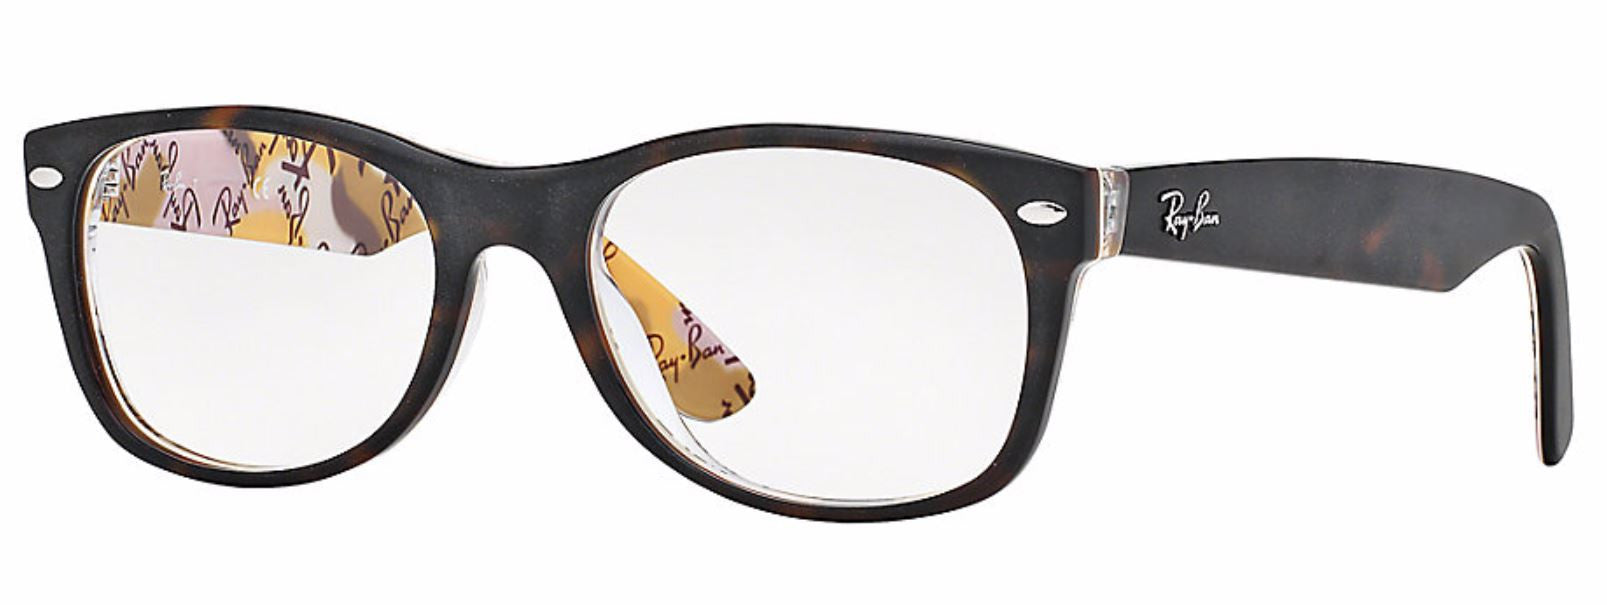 Ray Ban RX5184 New Wayfarer Eyeglasses